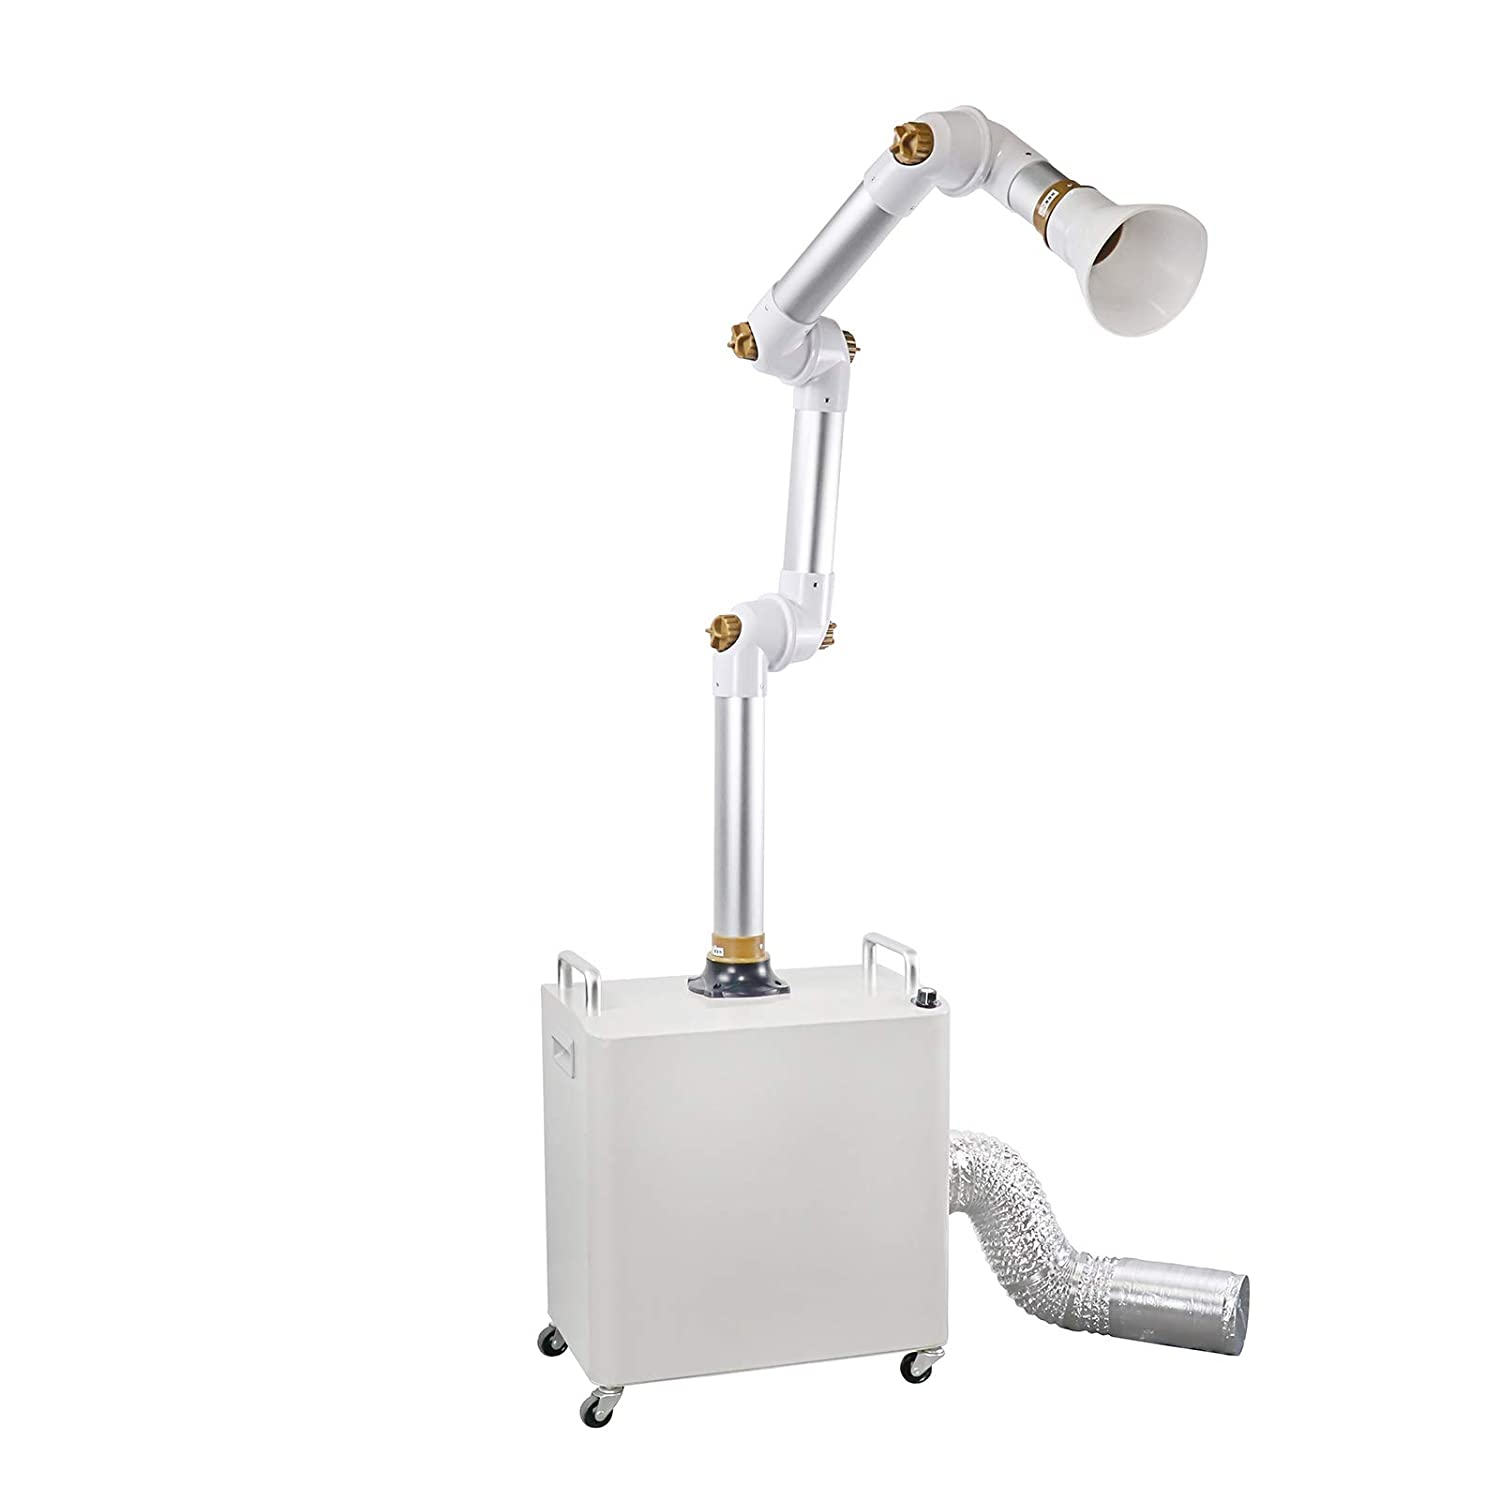 NSKI 1000W Mobile External Oral Suction Device with Utraviolet Sterilization High Filtration Efficiency Activated Aarbon Adsorption